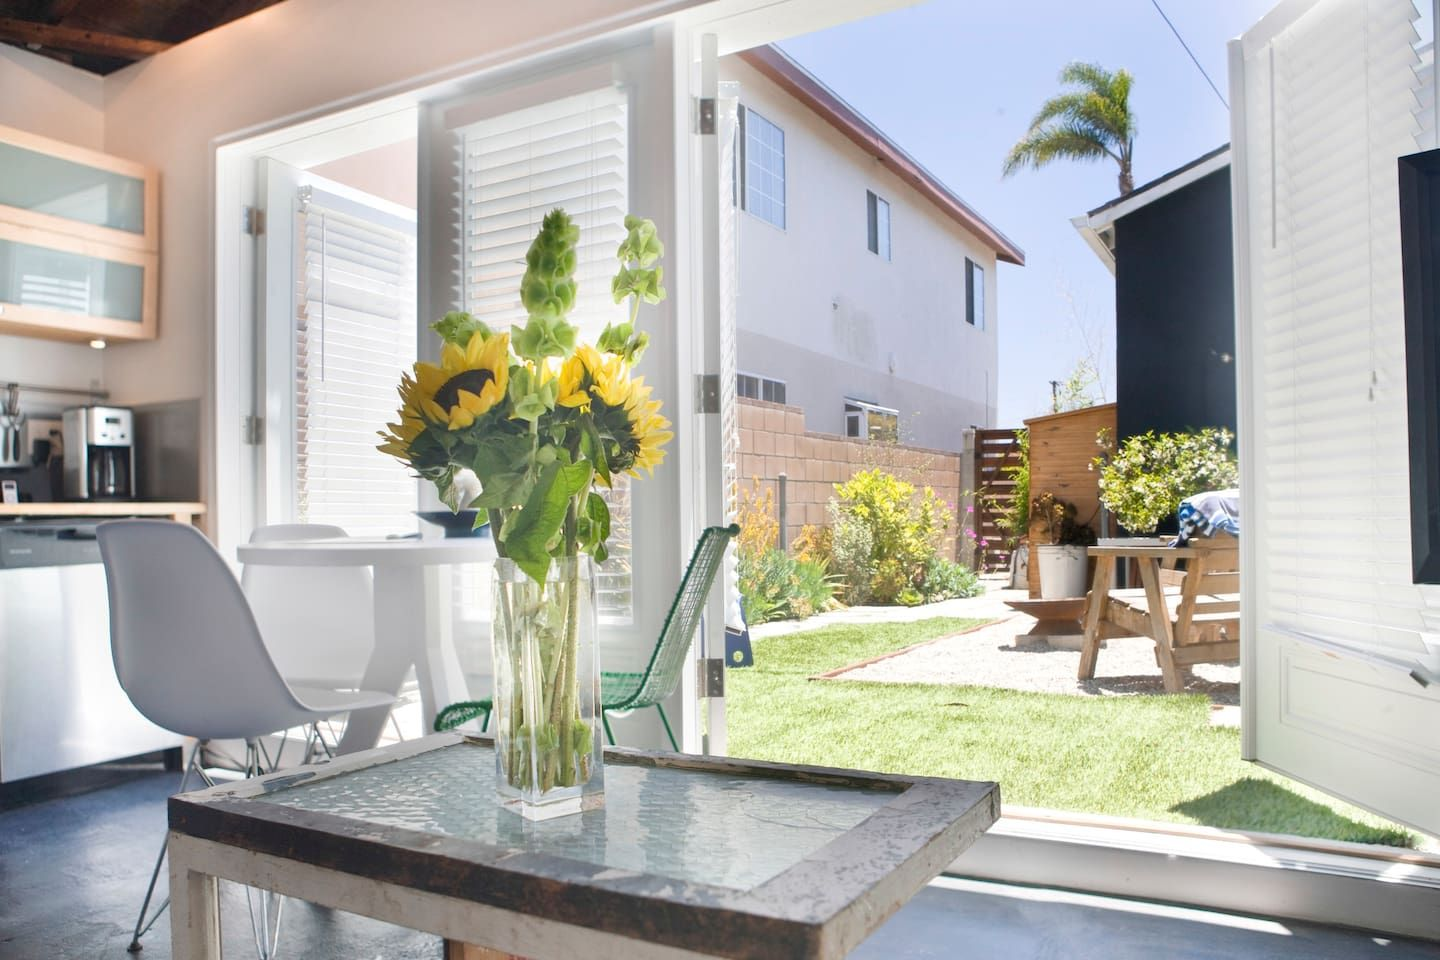 The Common Studio Venice Beach Ca Guesthouses For Rent In Los Angeles California United States Venice Beach House Venice Beach California Venice Beach